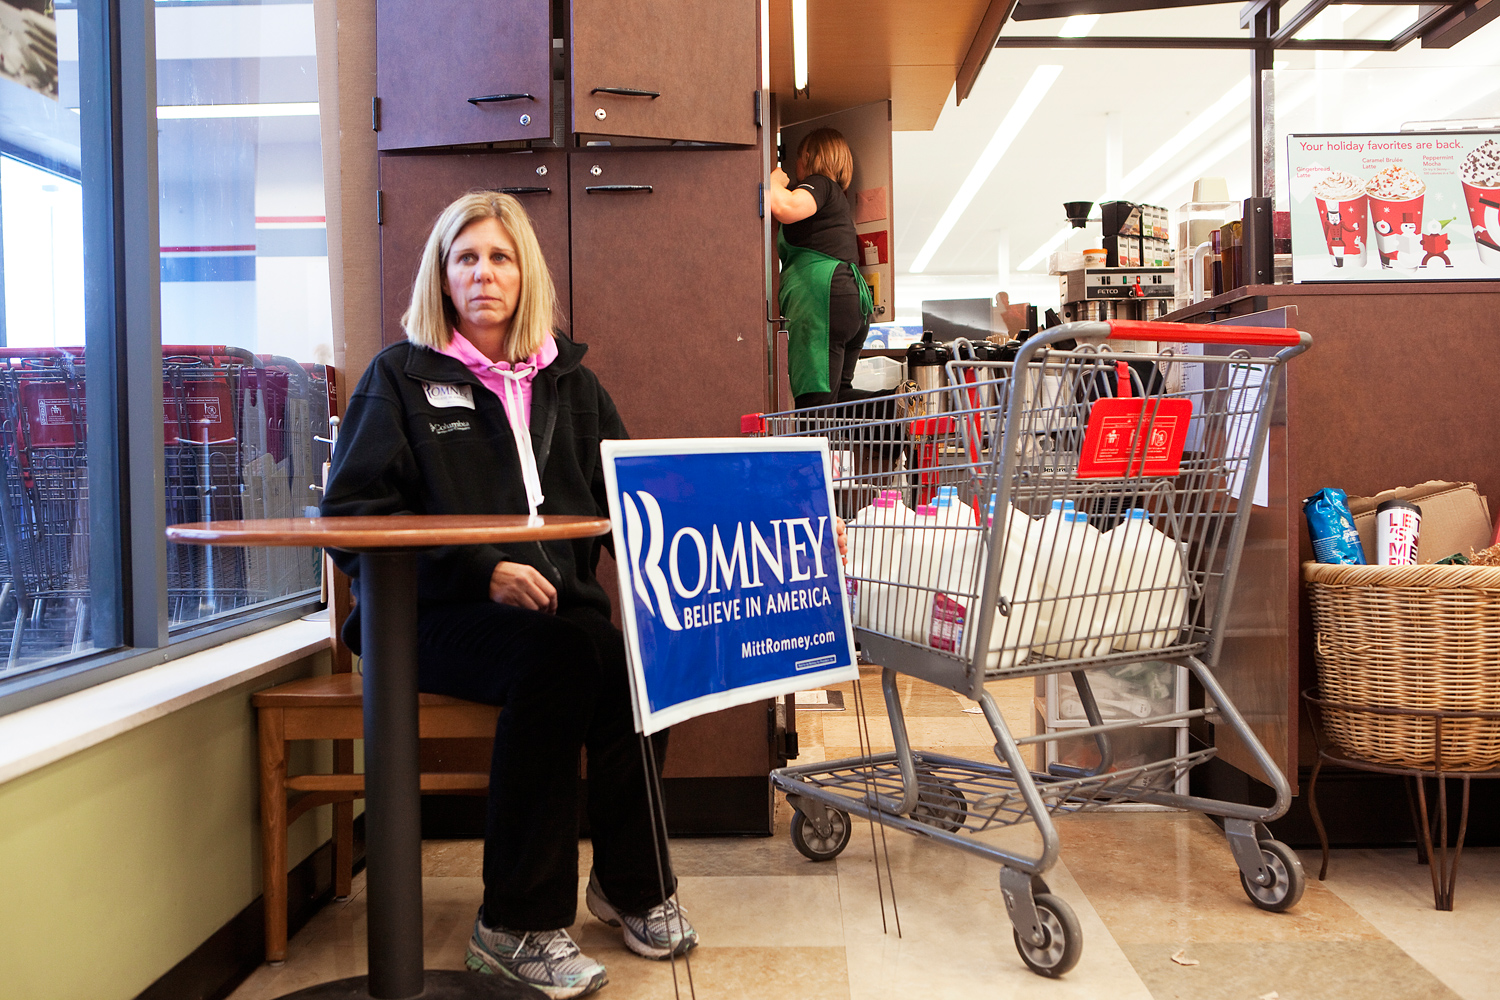 Mitt Romney supporter Becky Nicoli at a campaign event at Hy-Vee supermarket in Des Moines, Iowa on December 30, 2011.